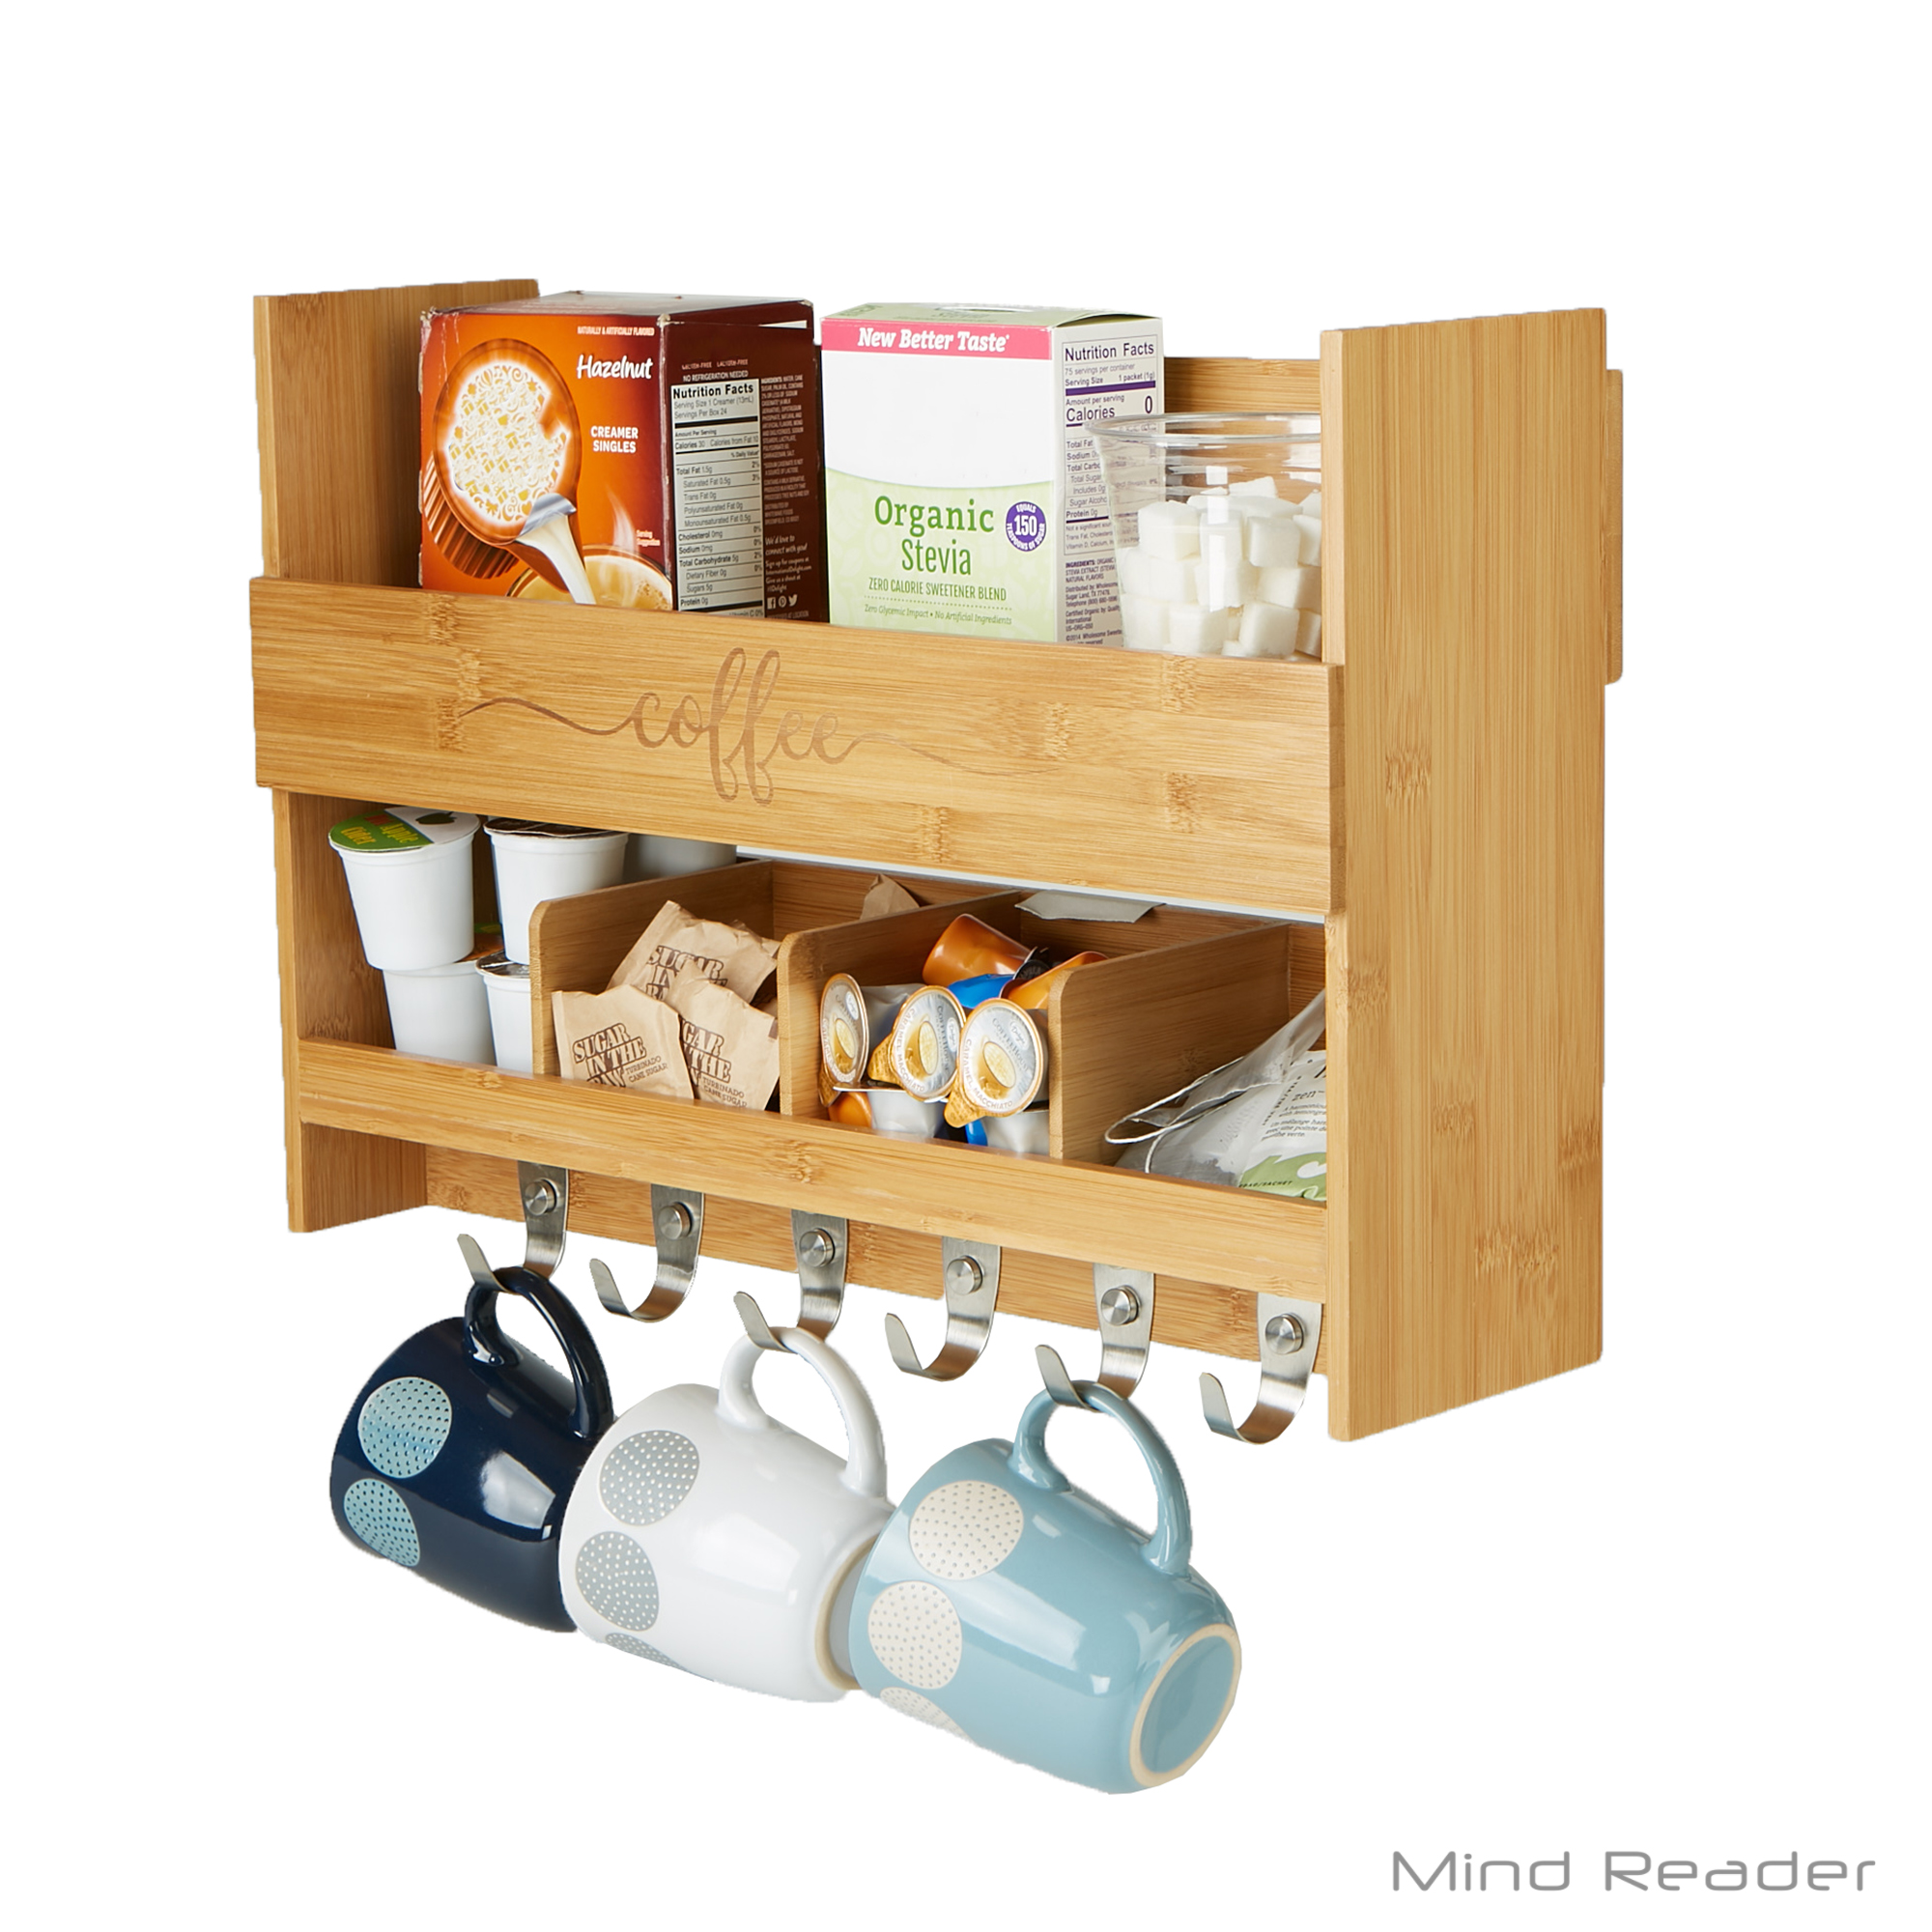 Mind Reader Wall Mount Coffee Mug Rack Condiment Kitchen Storage Organization, Brown